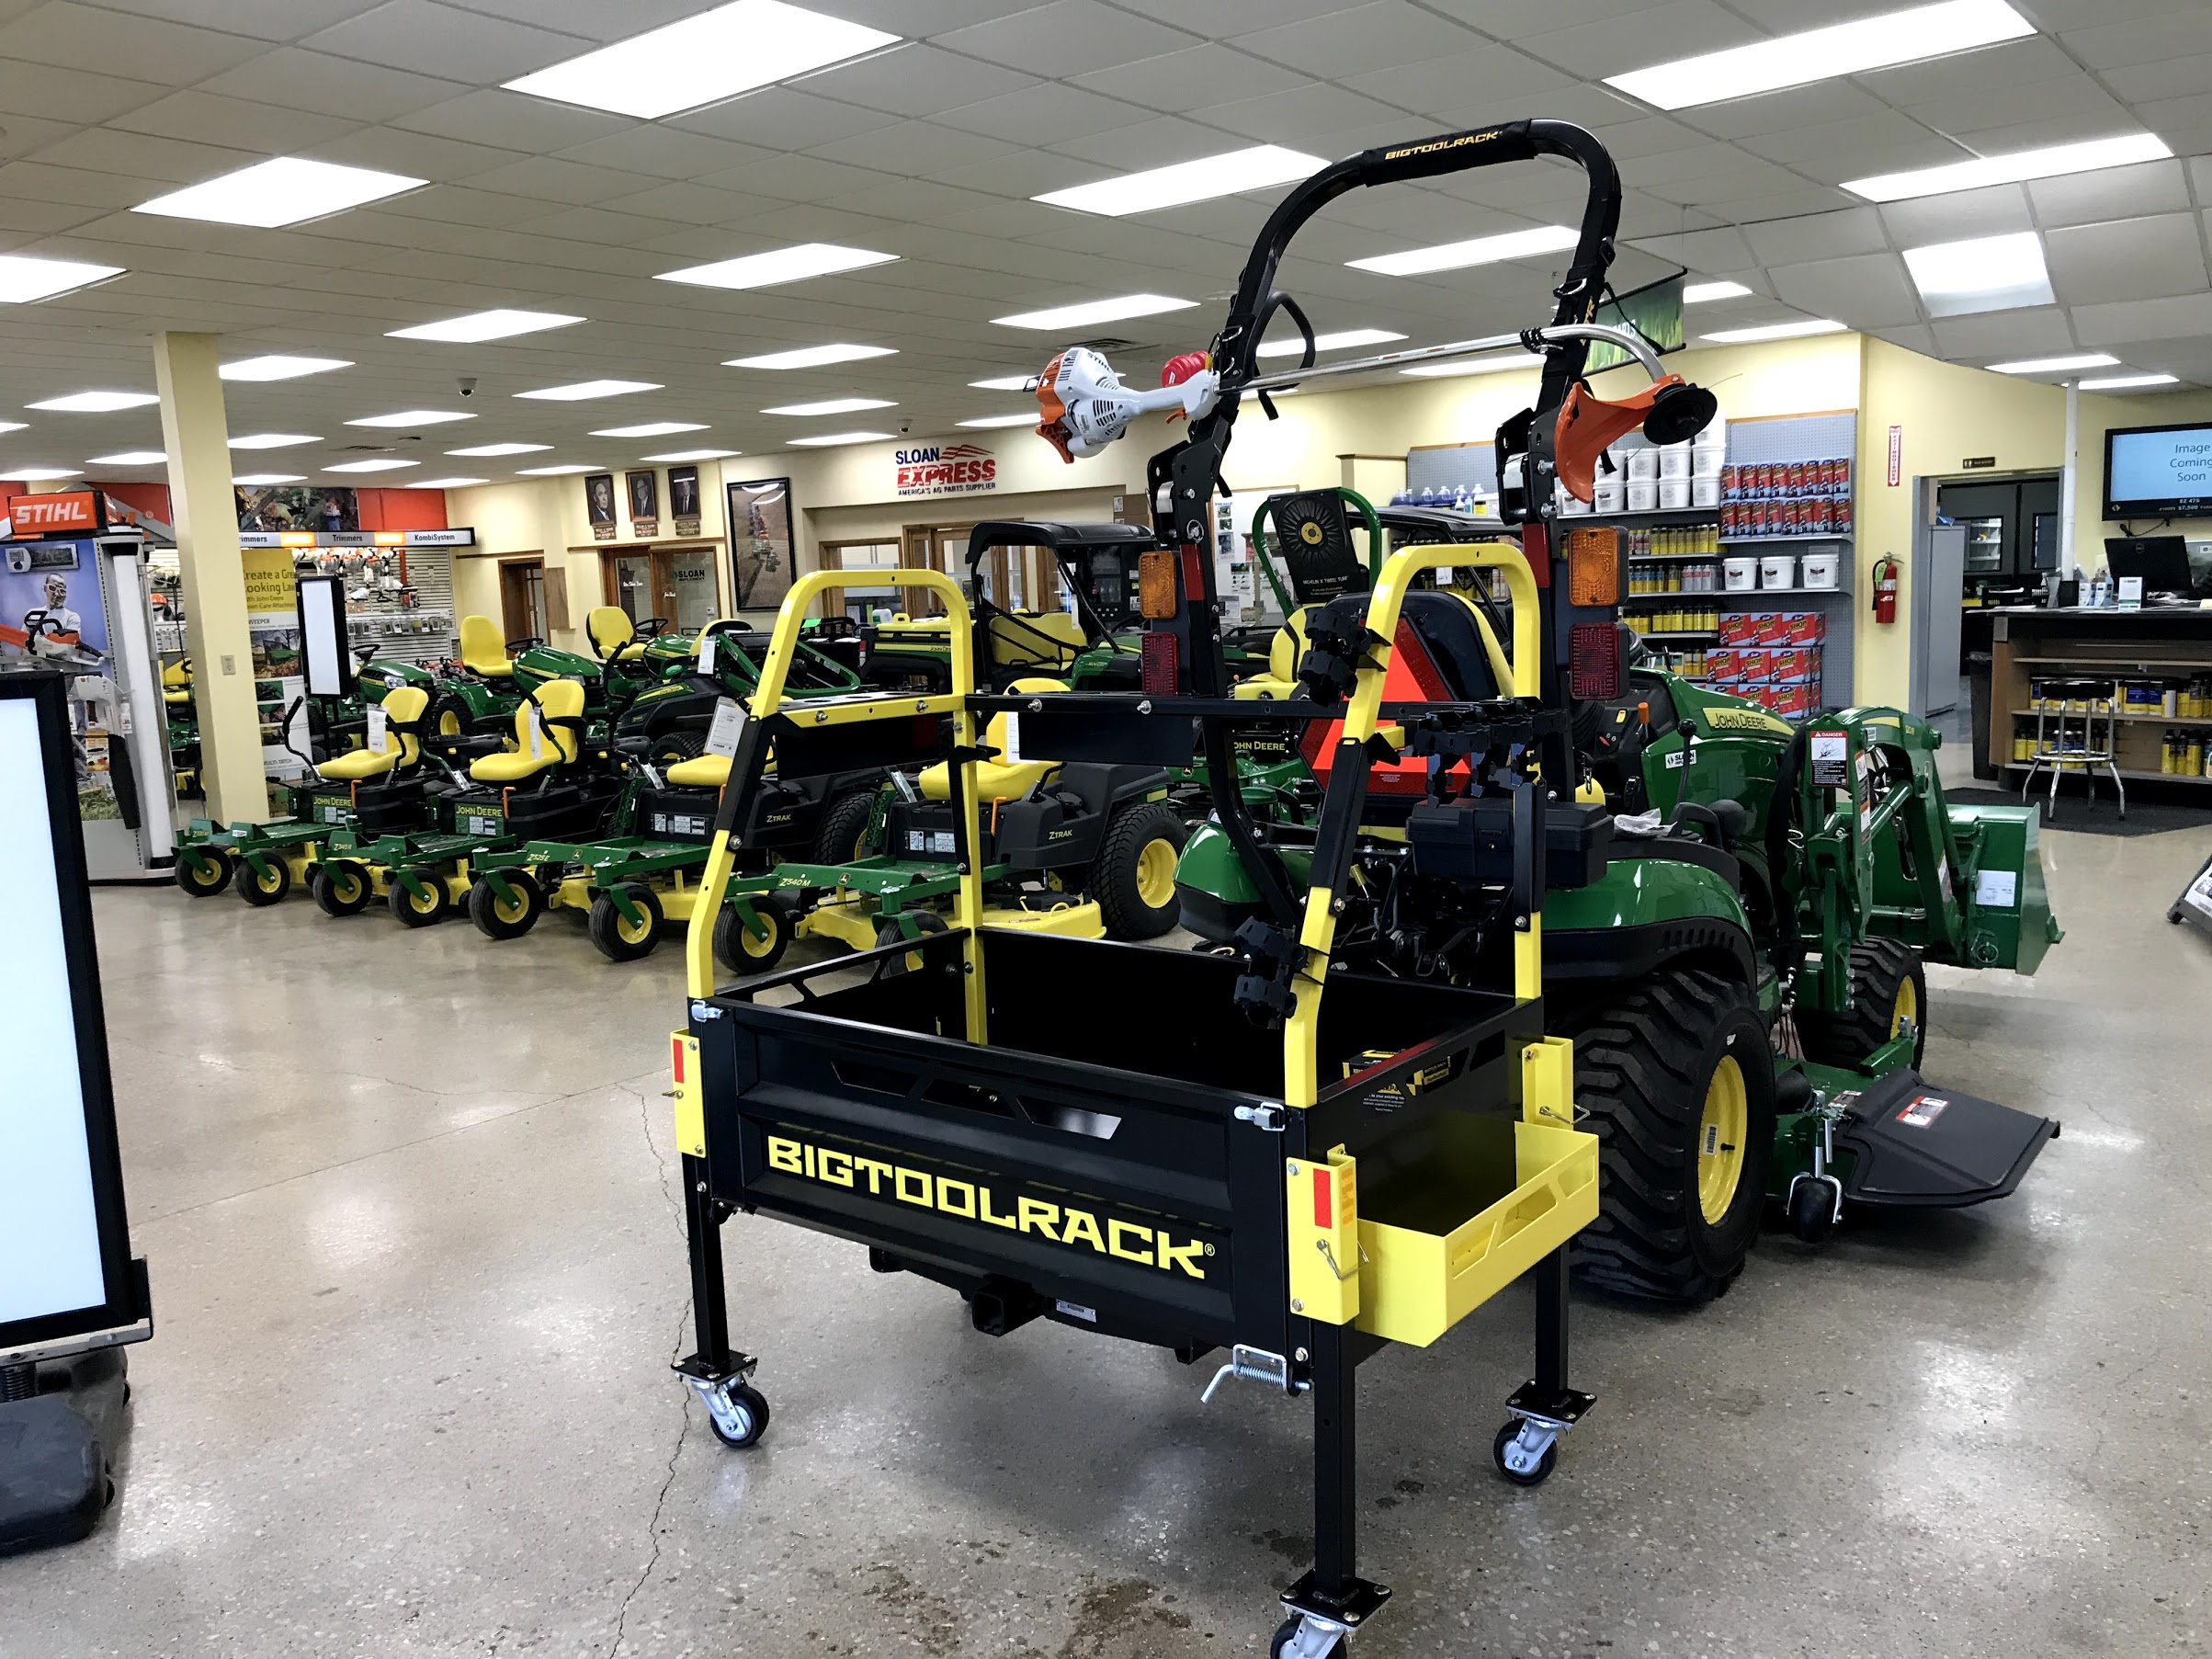 Click image for larger version.  Name:Bigtoolrack on a John Deere 1025R at Sloans Equipment.jpg Views:0 Size:884.8 KB ID:676594